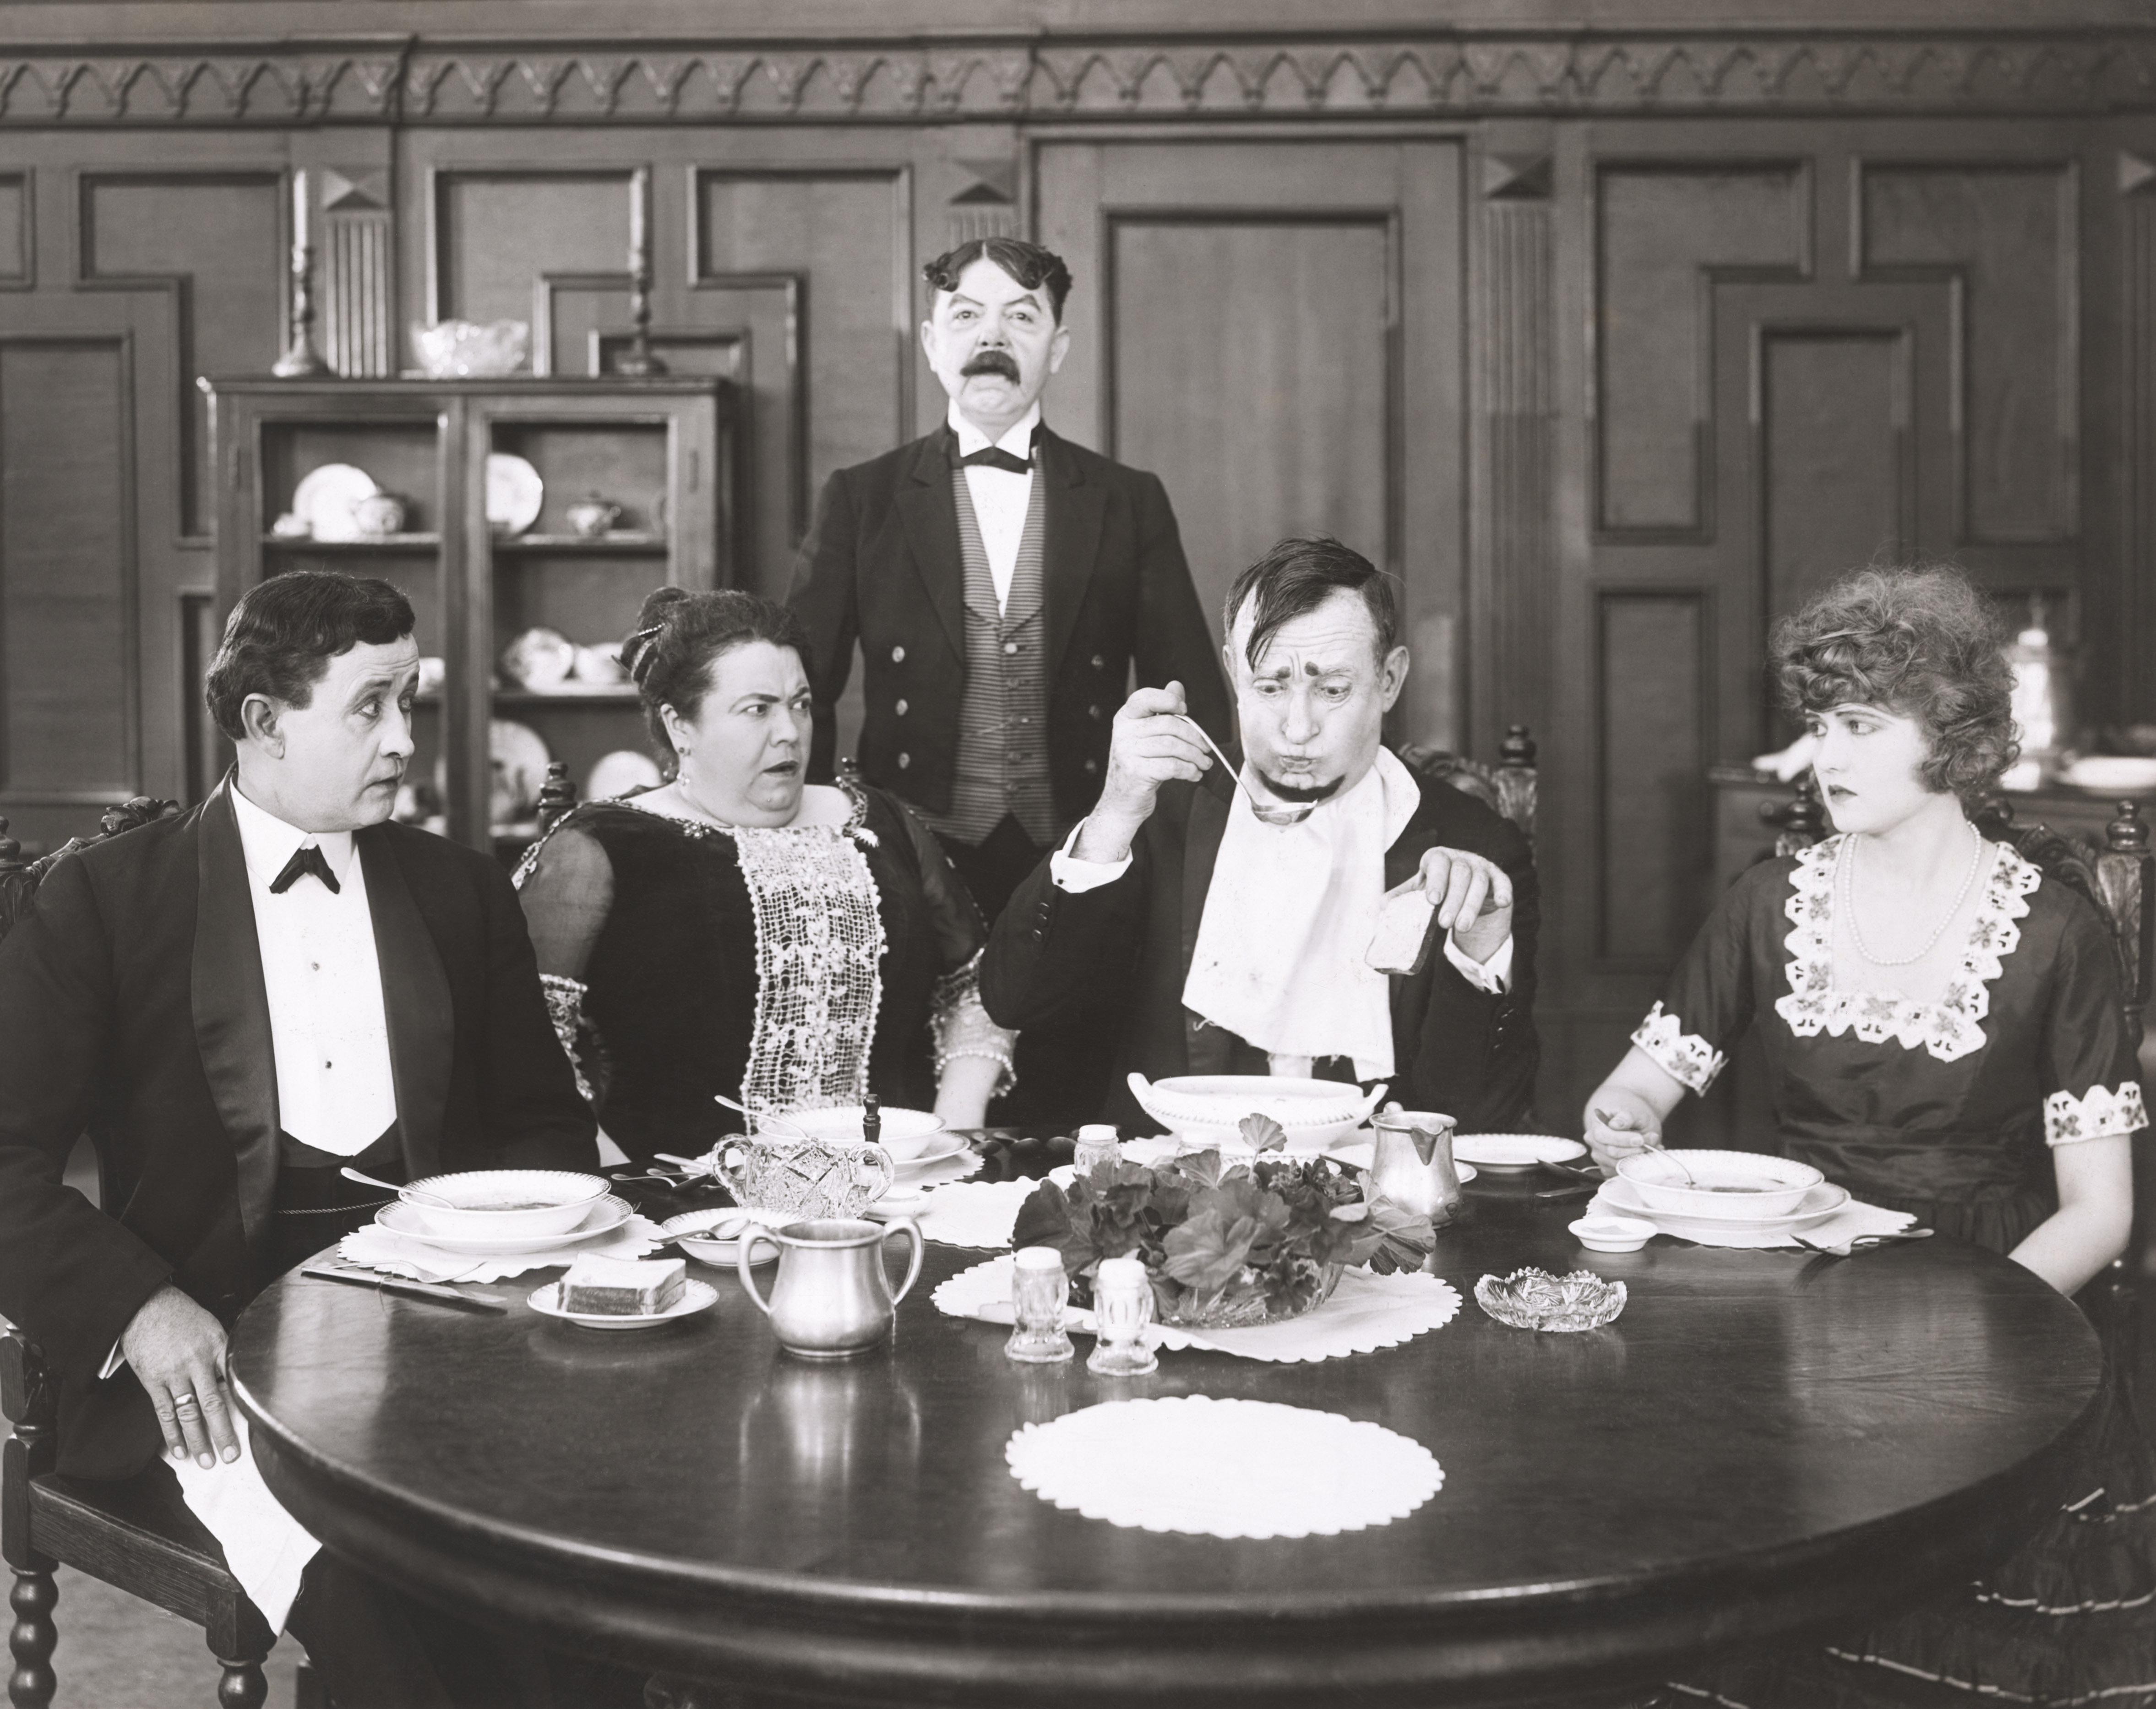 Man taking a bite of food at the dinner table with a worried look on his face as other table guests look on